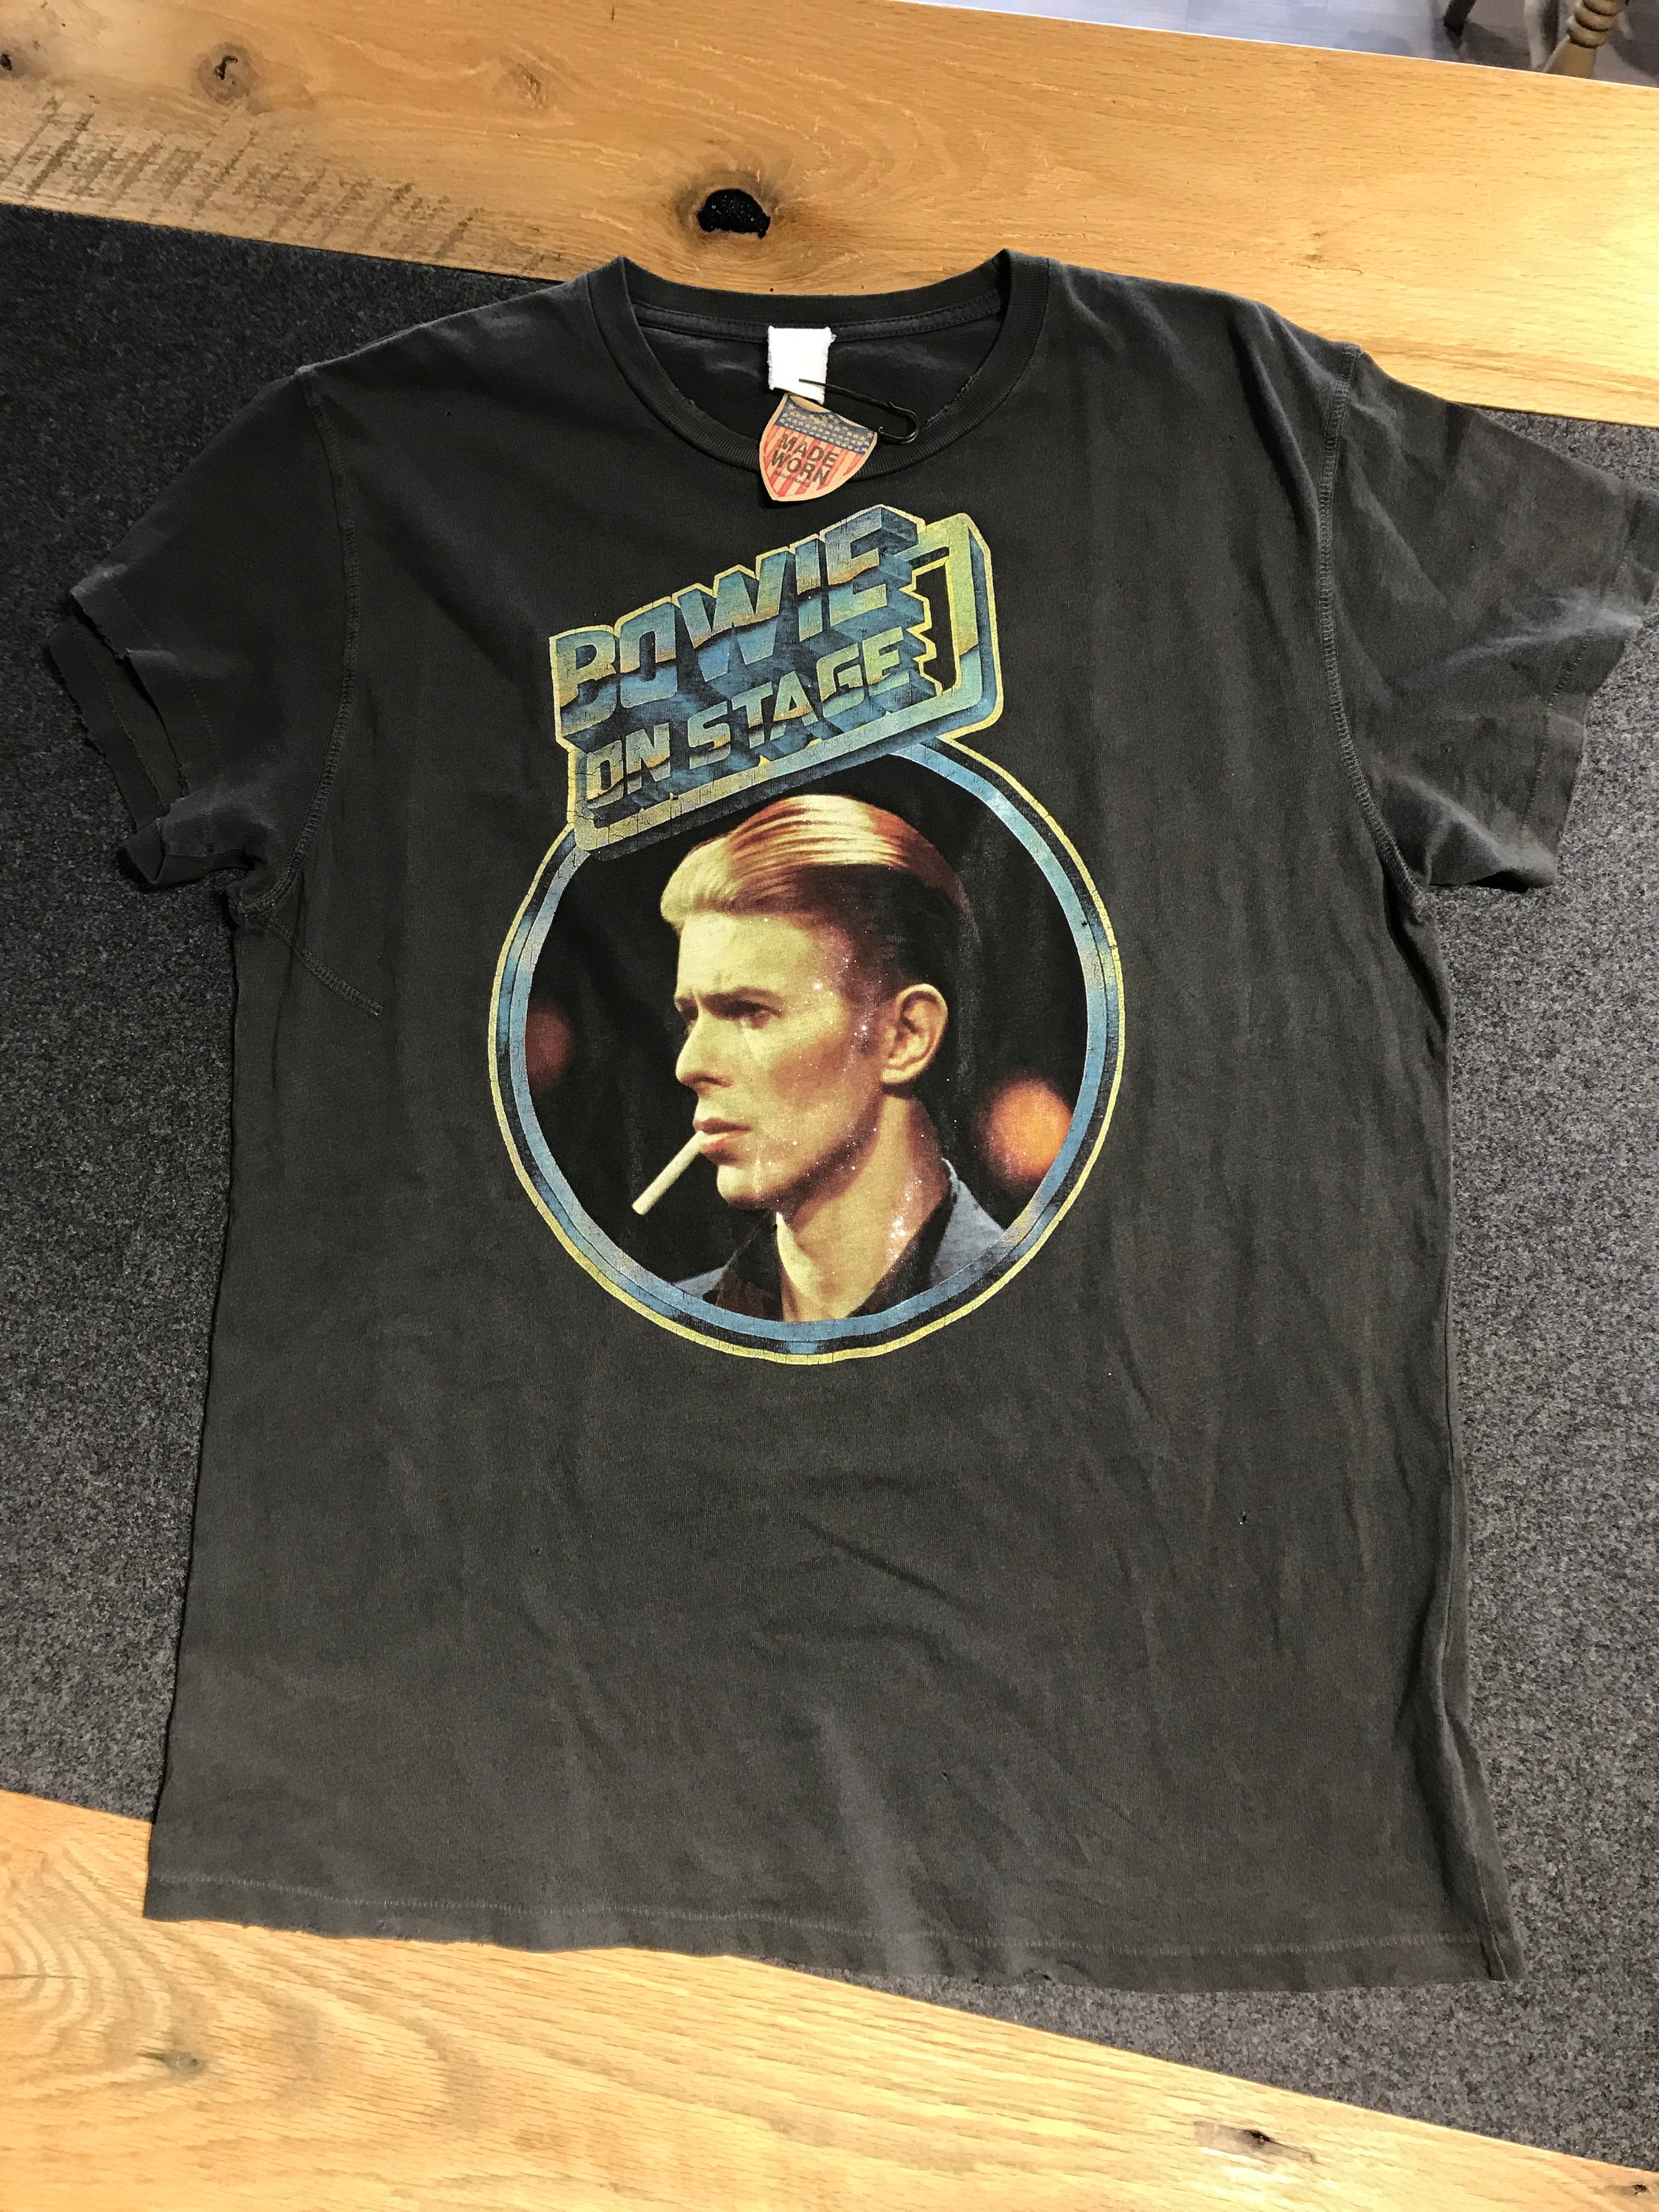 Bowie On Stage T-Shirt